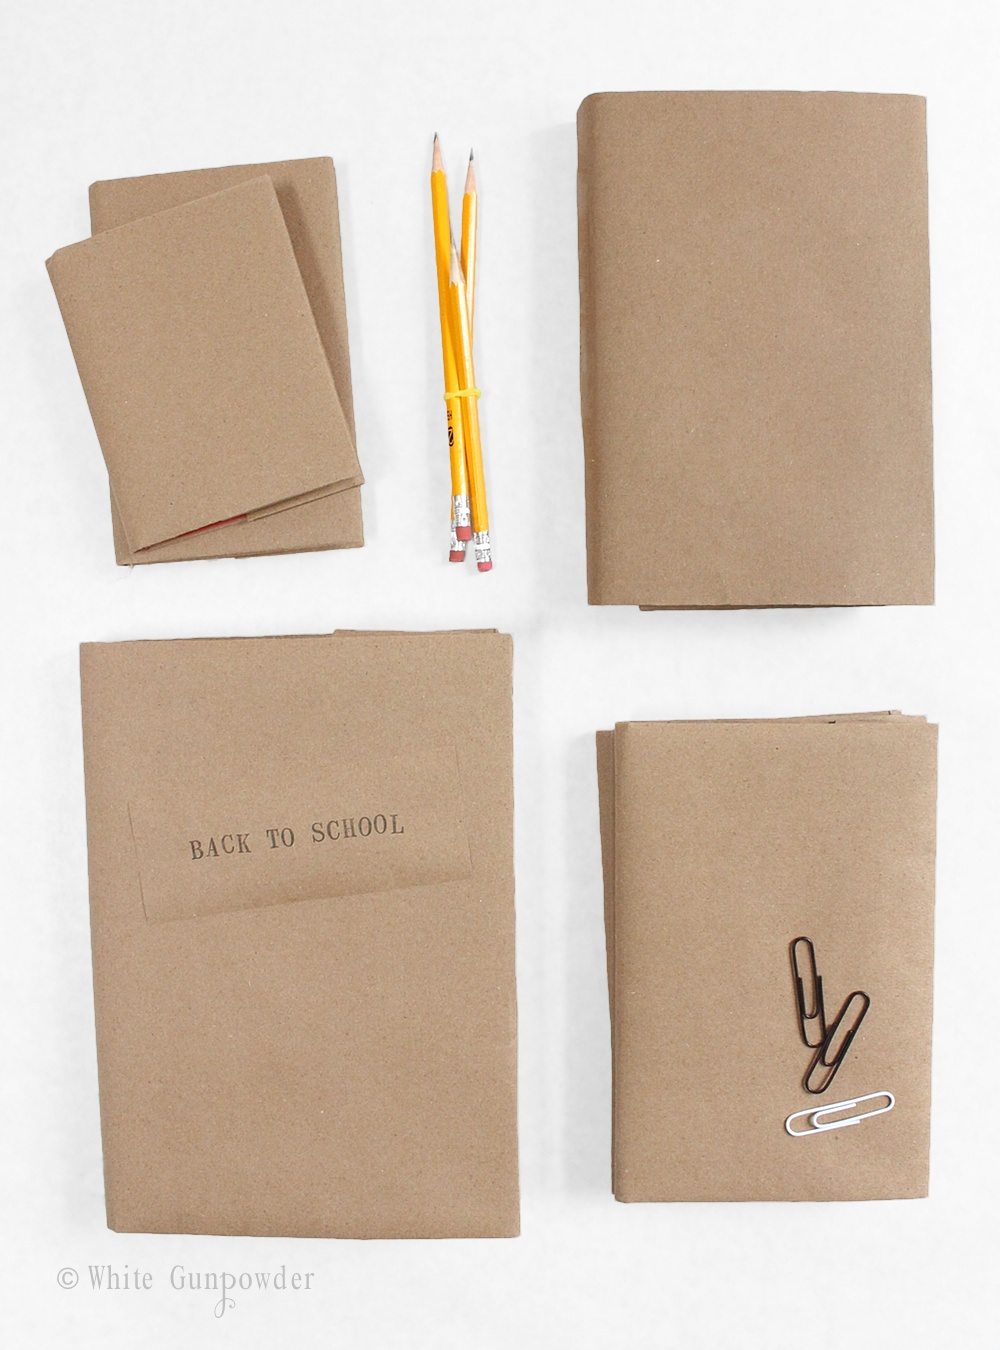 Diy Book Cover Without A Paper ~ Back to school diy brown paper book covers white gunpowder